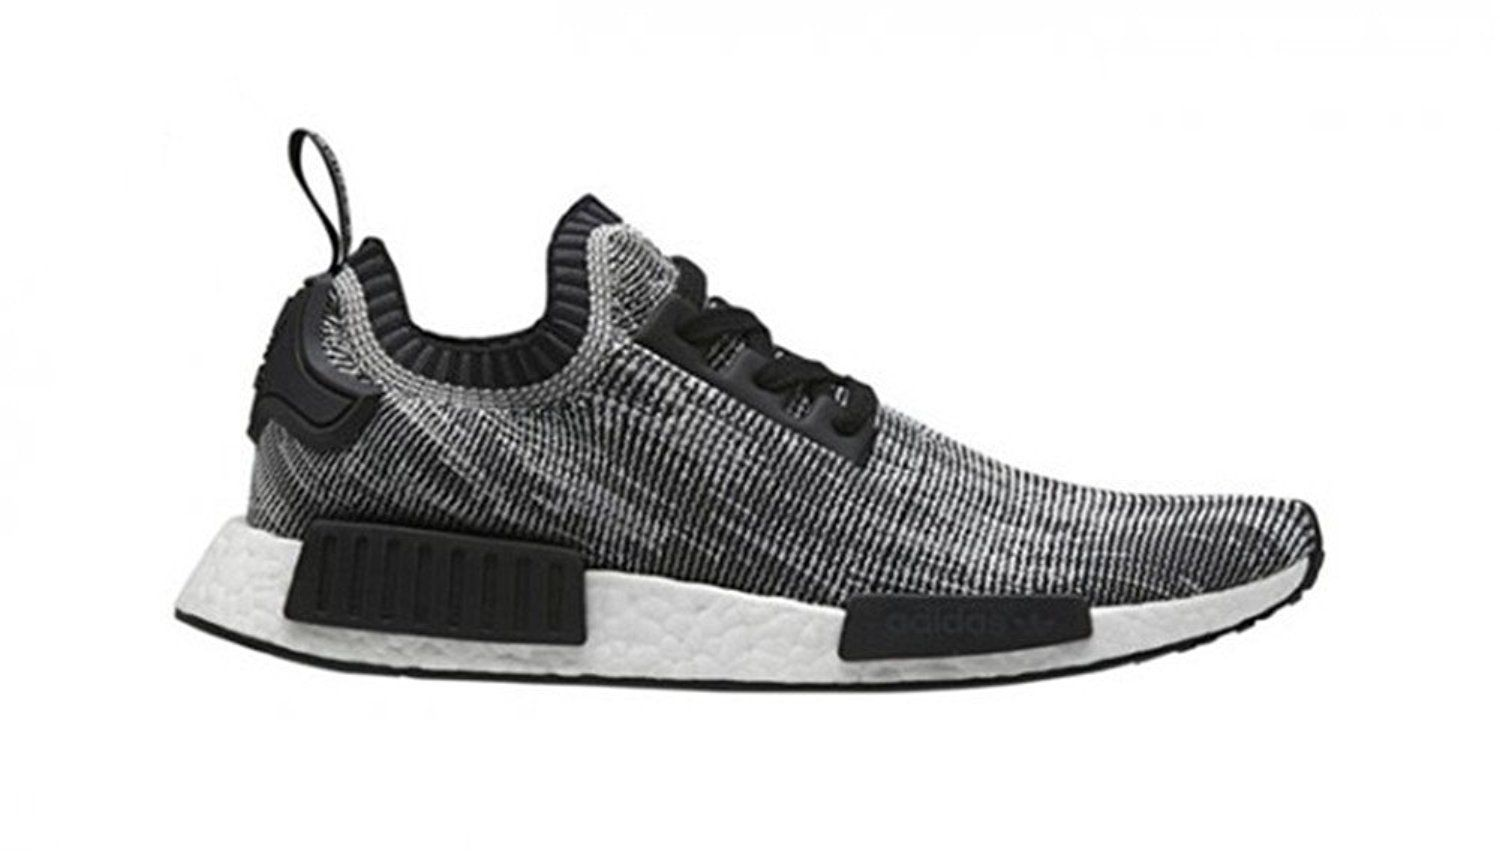 431a82c50bde Adidas Womens NMD R1 Nomad Runner S79478    Click image to review more  details.